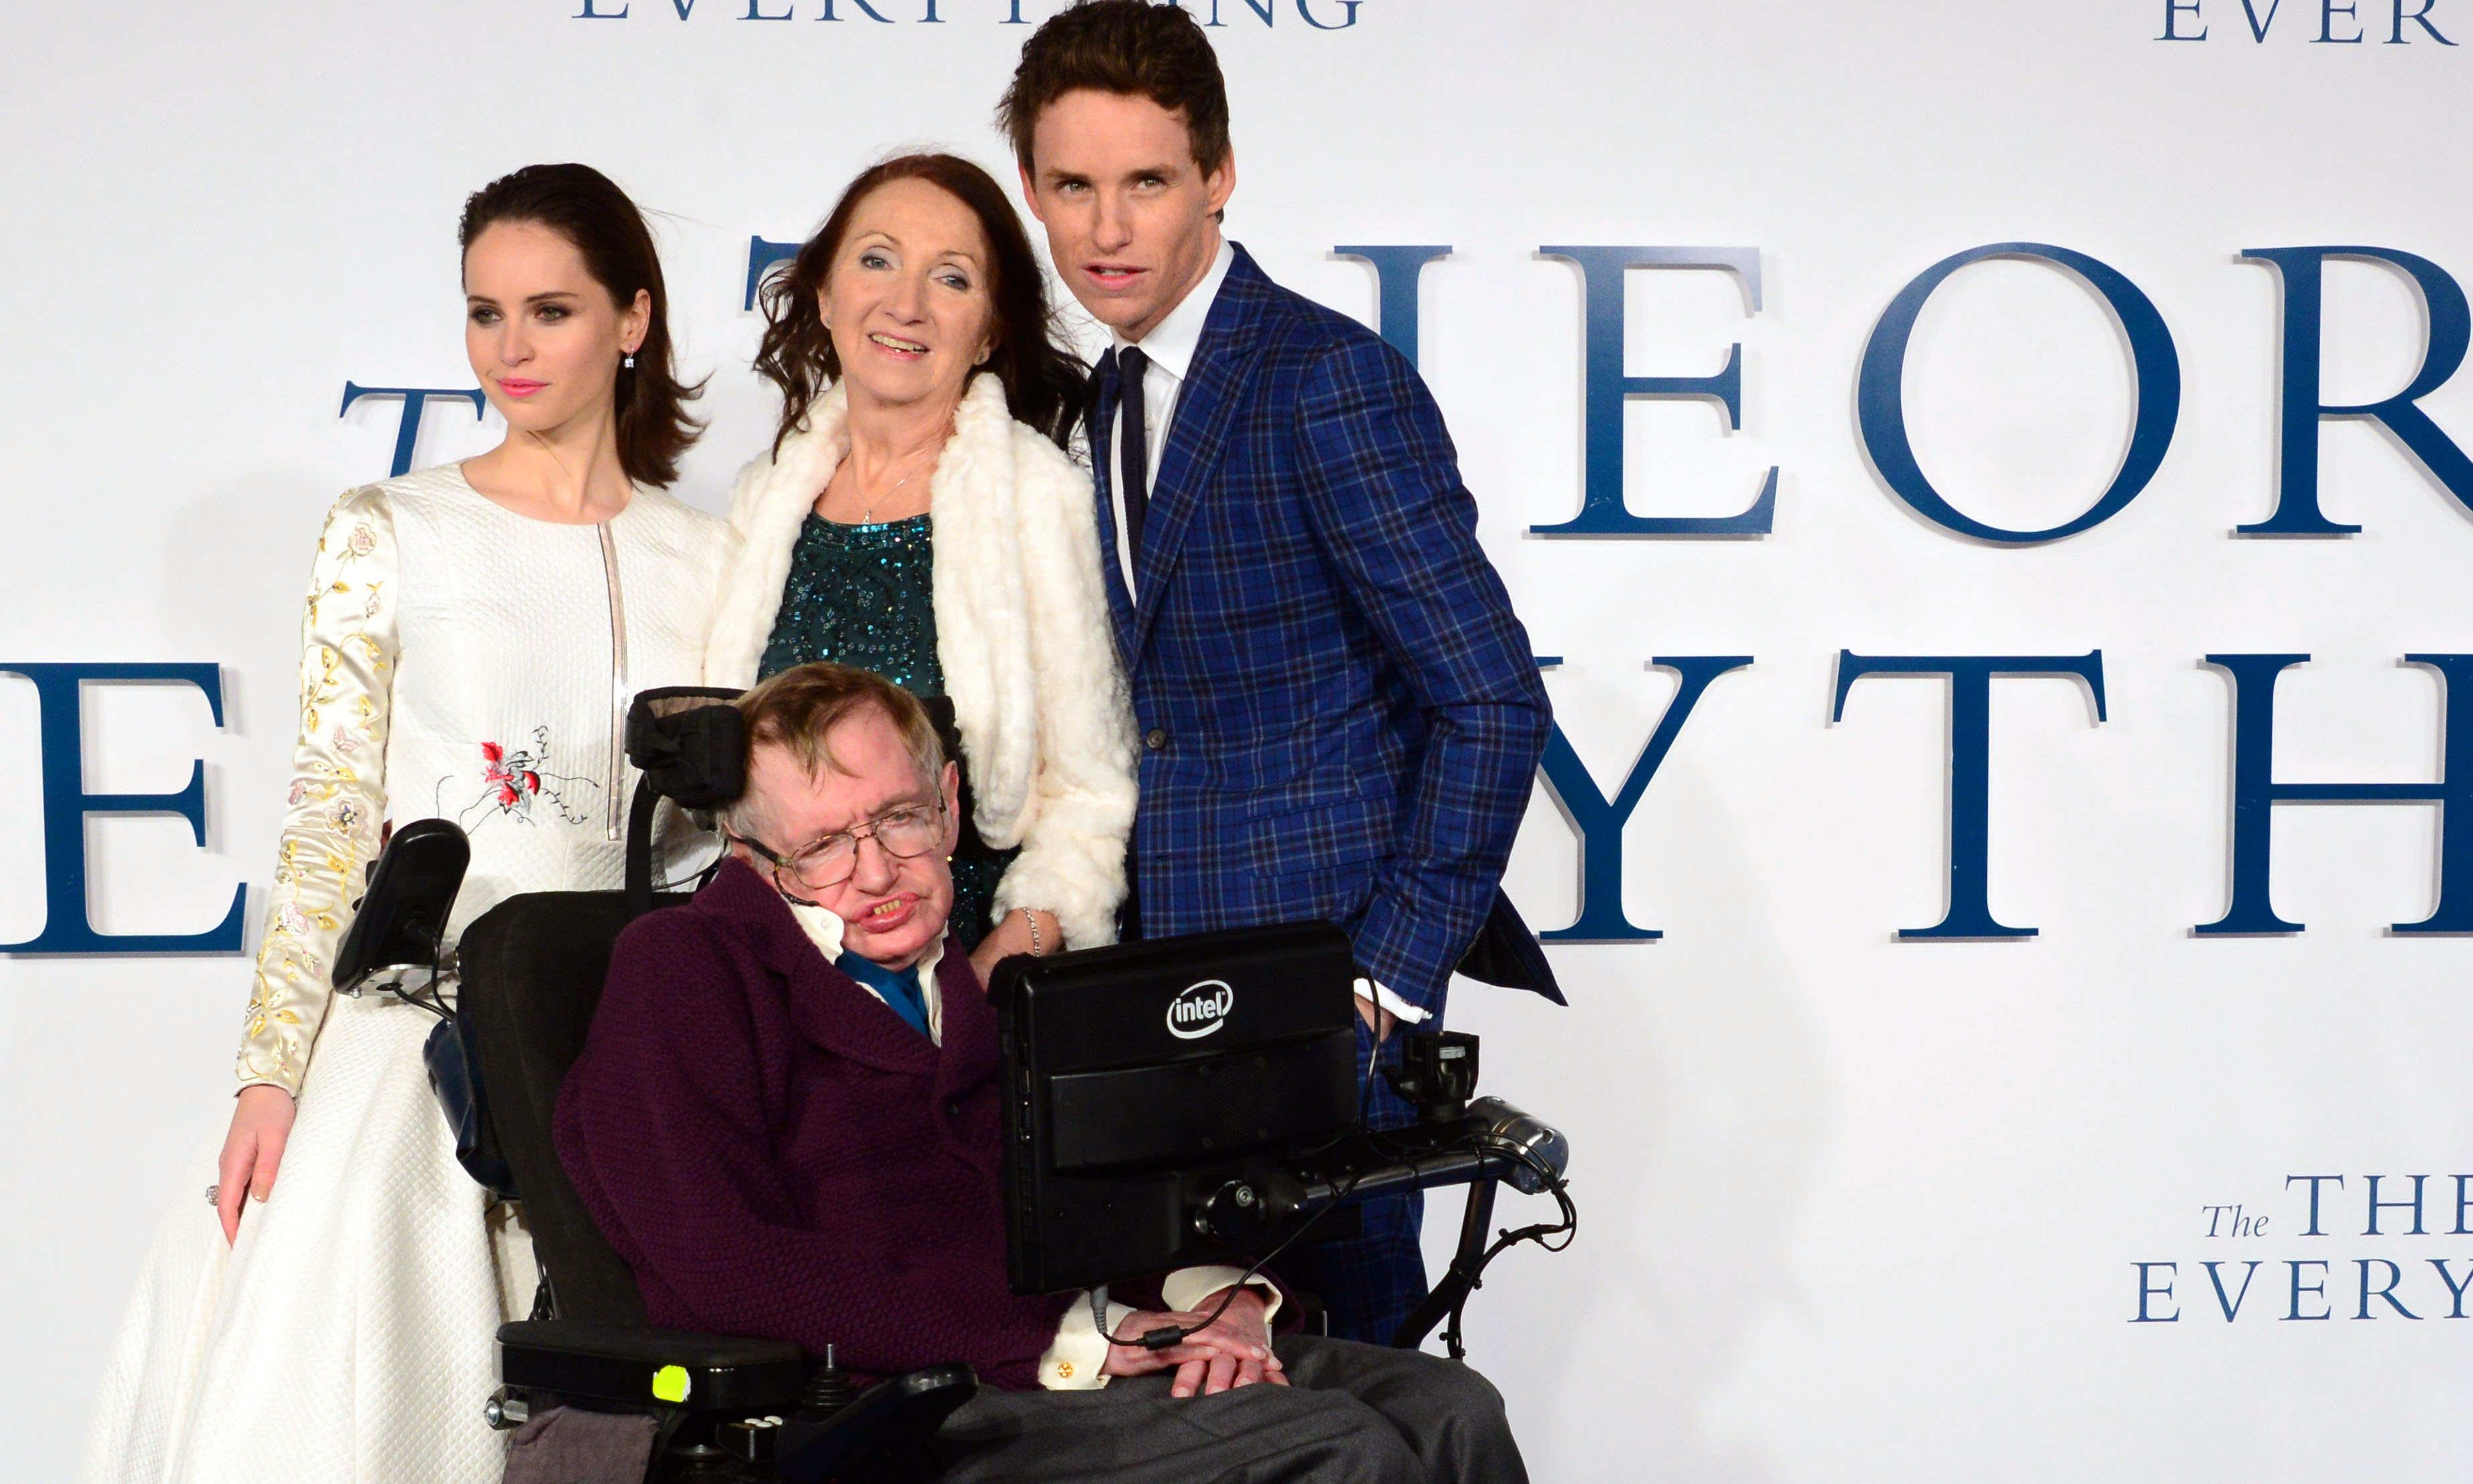 Stephen Hawking's first wife intensifies attack on The Theory of Everything